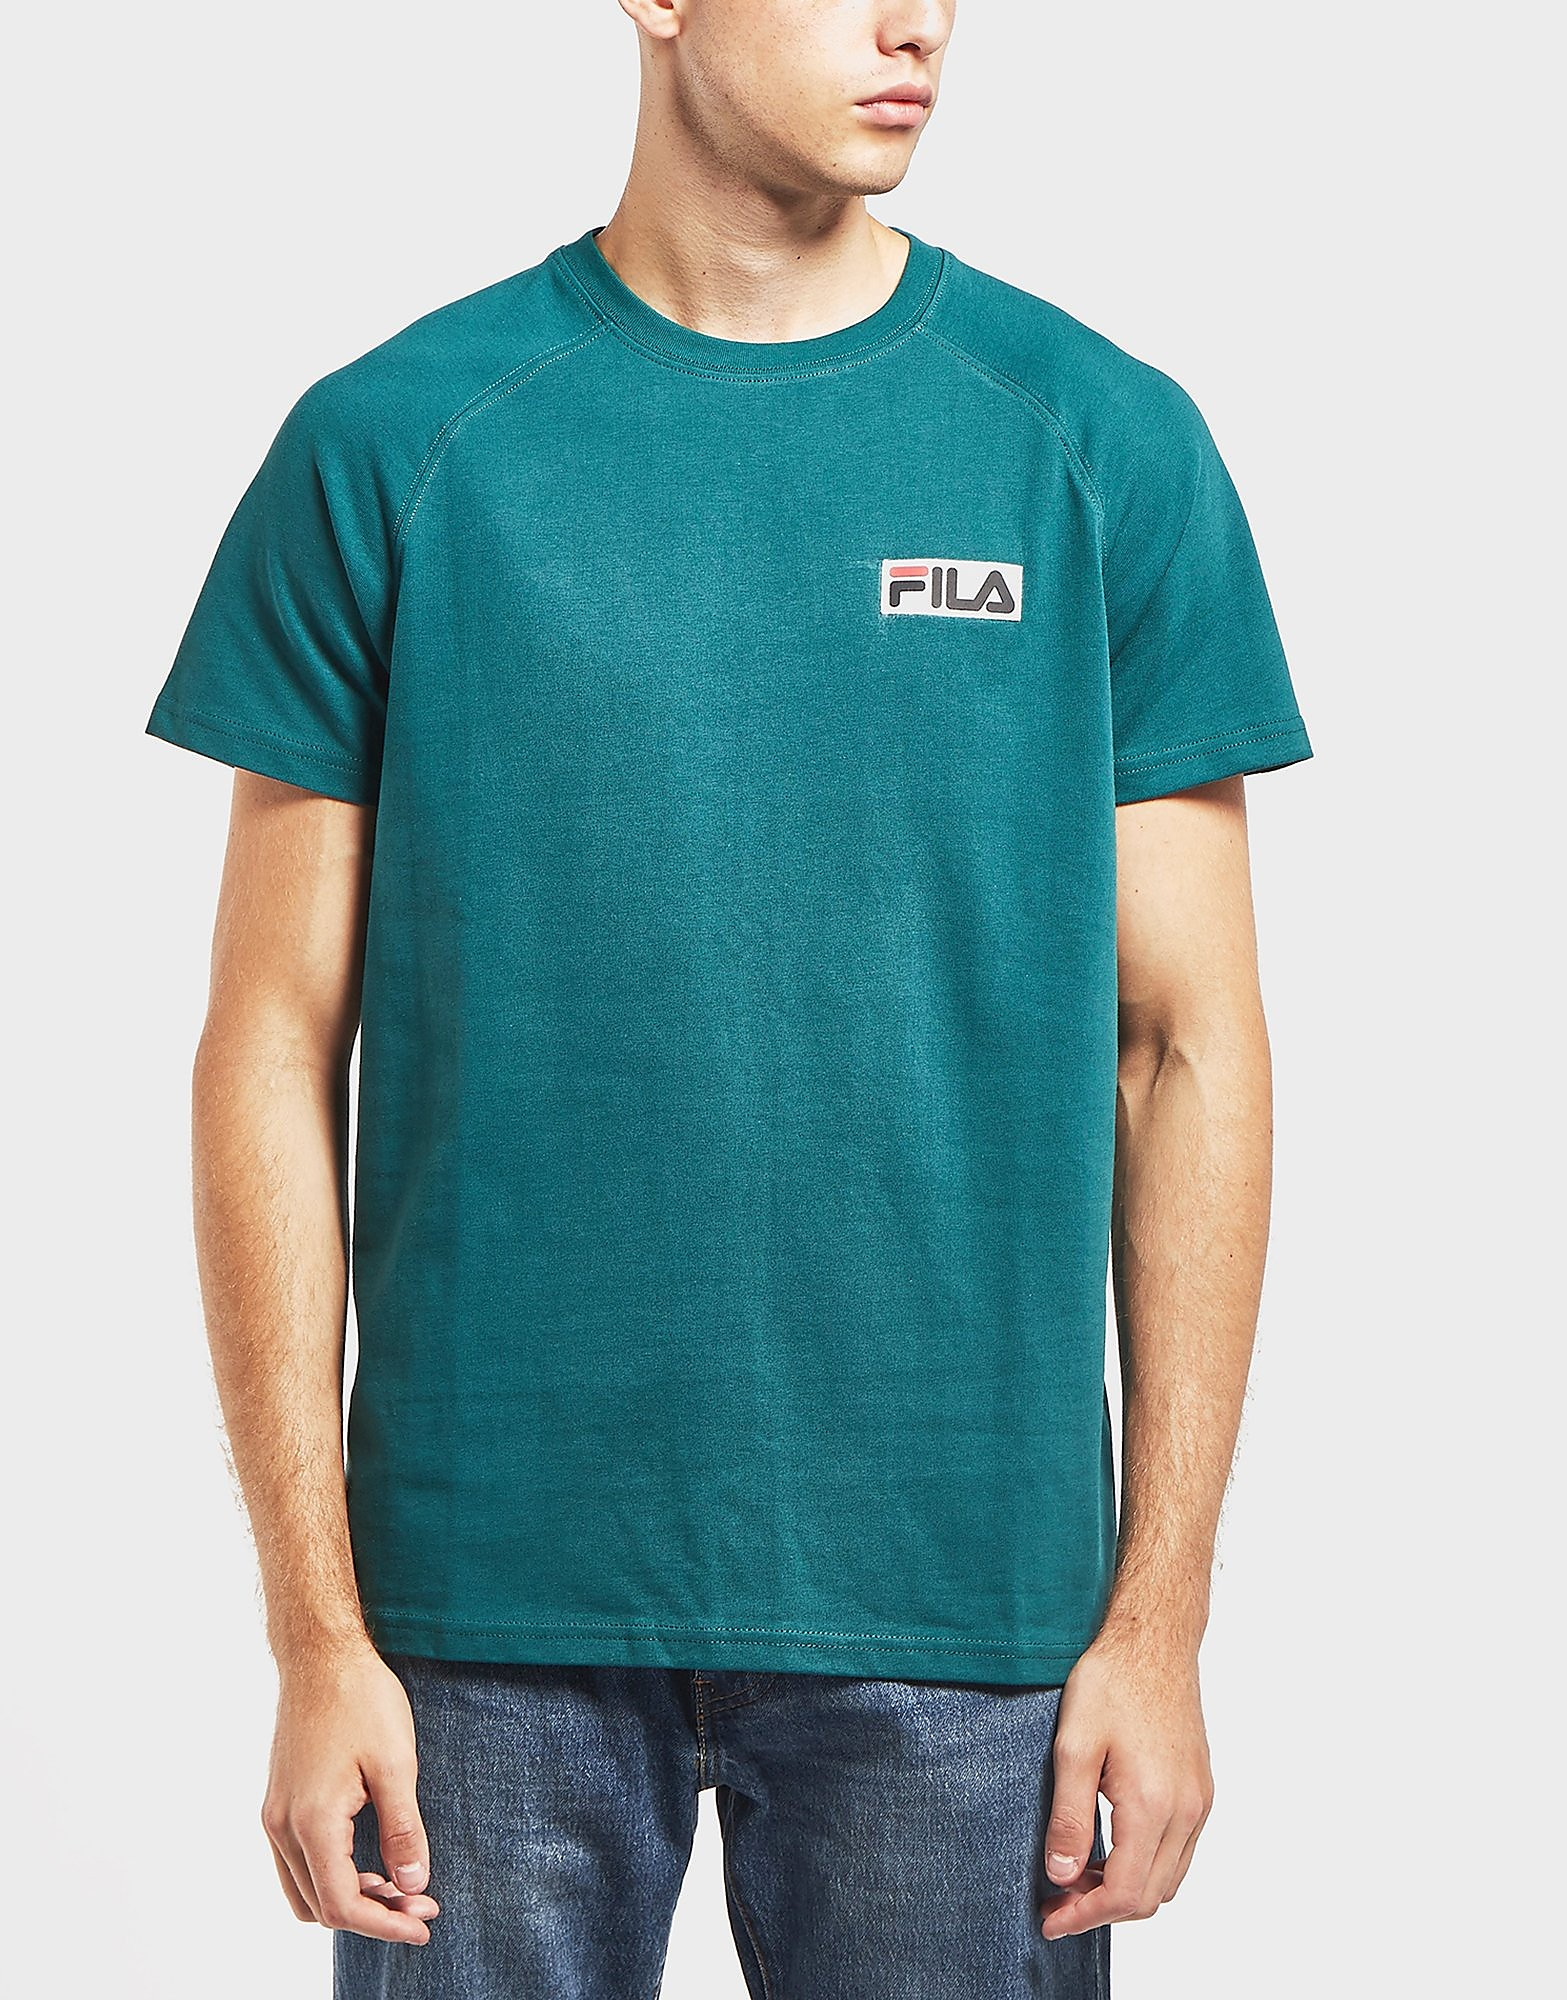 Fila Chia Short Sleeve T-Shirt - Exclusive